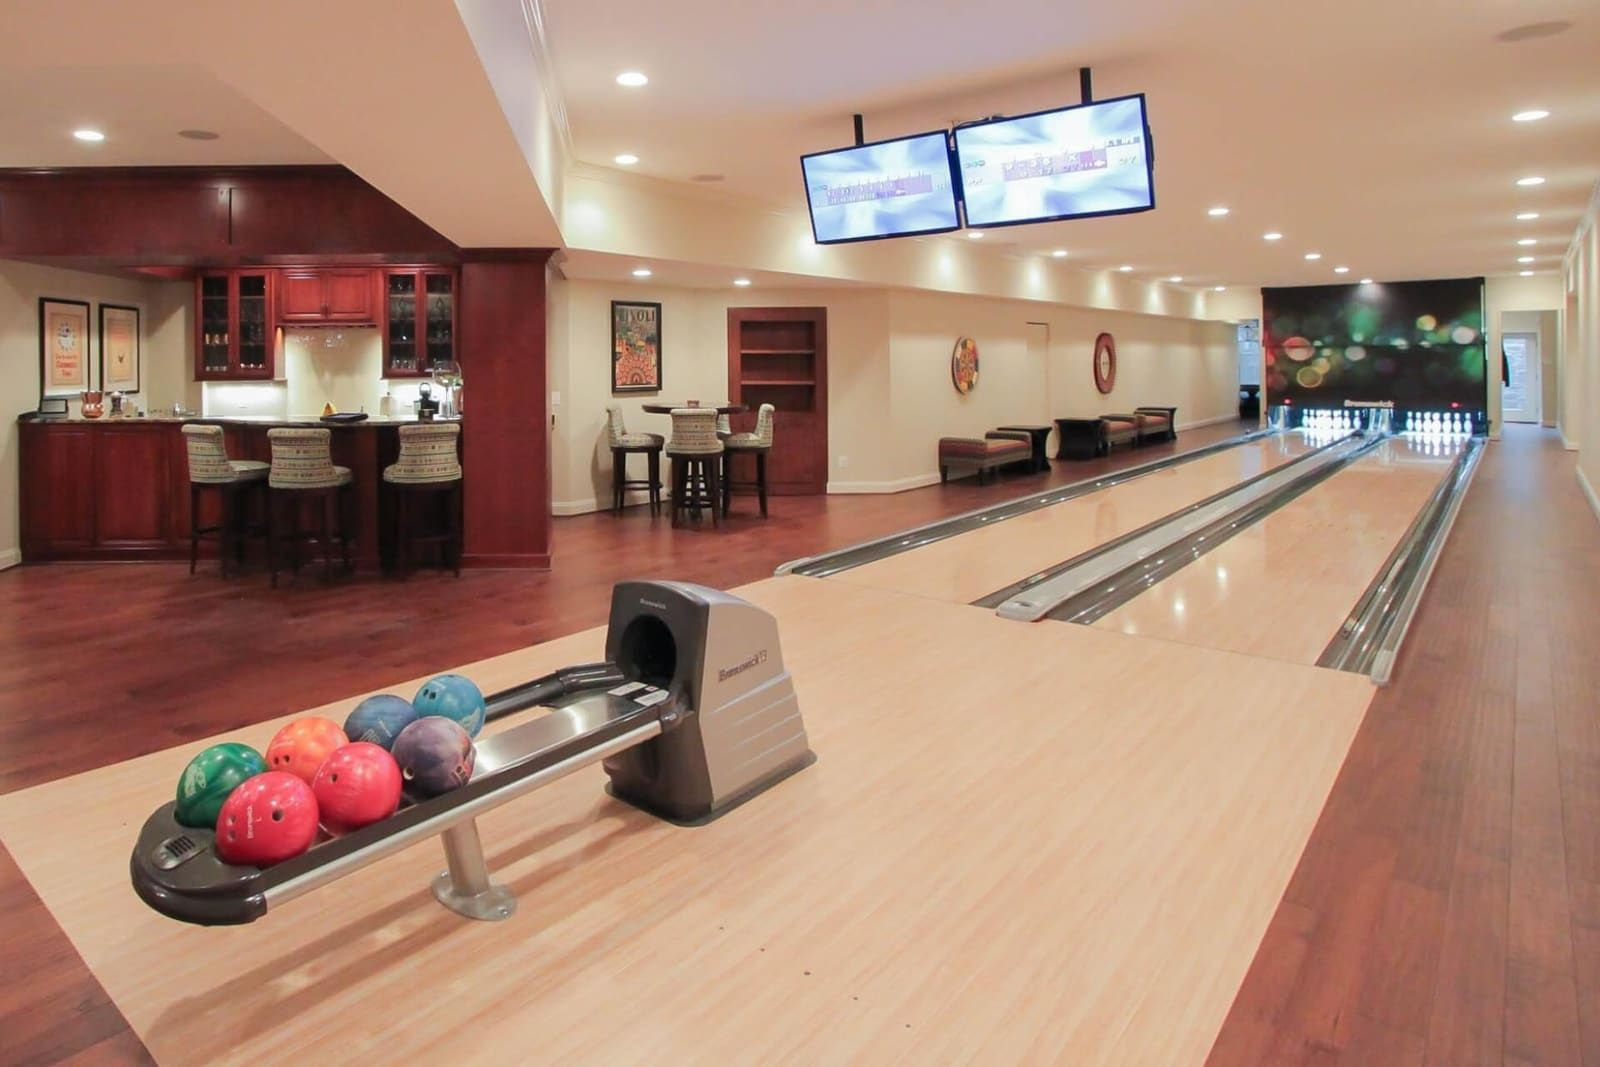 Home Bowling Alley Photos & Amenity Bowling Lane Gallery